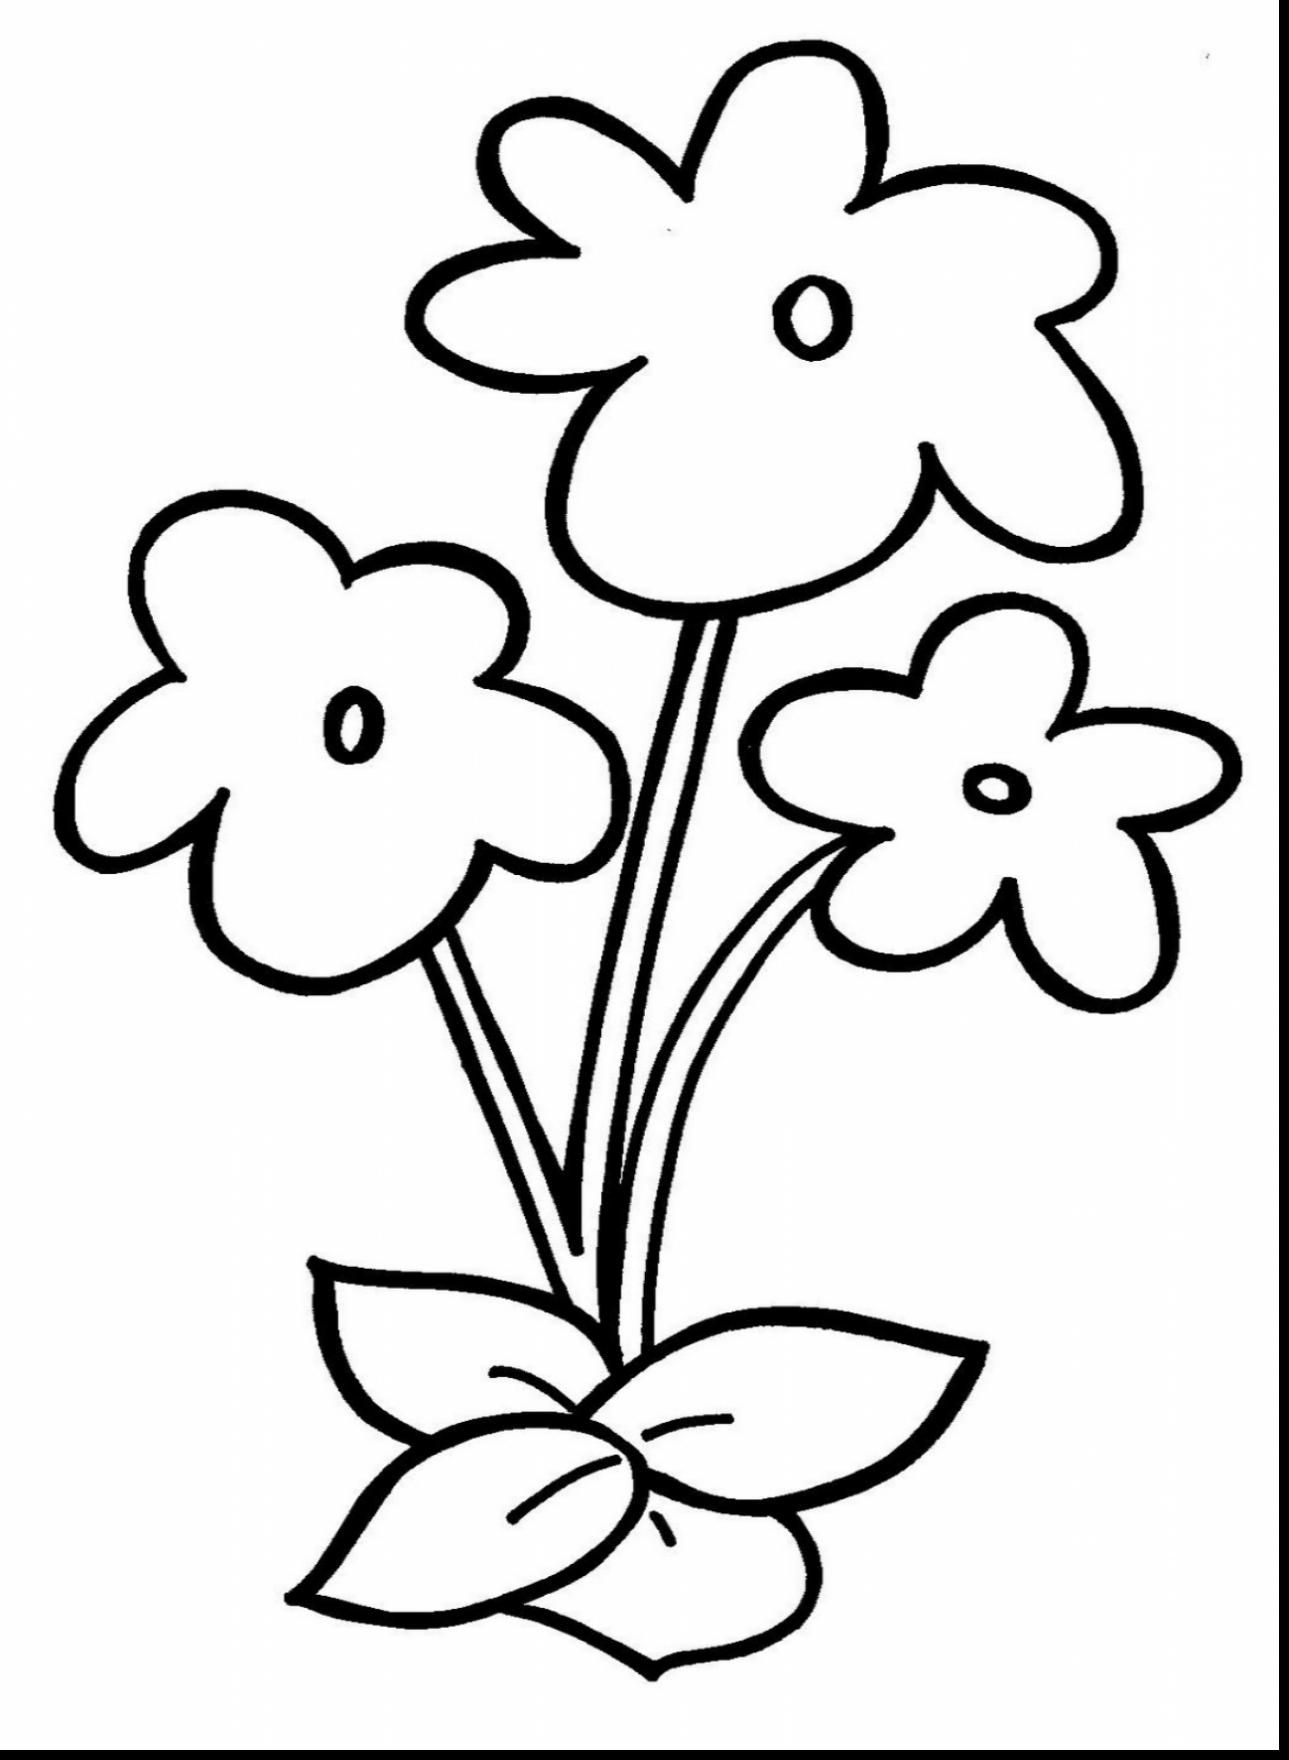 Small Flower Coloring Pages At Getcolorings